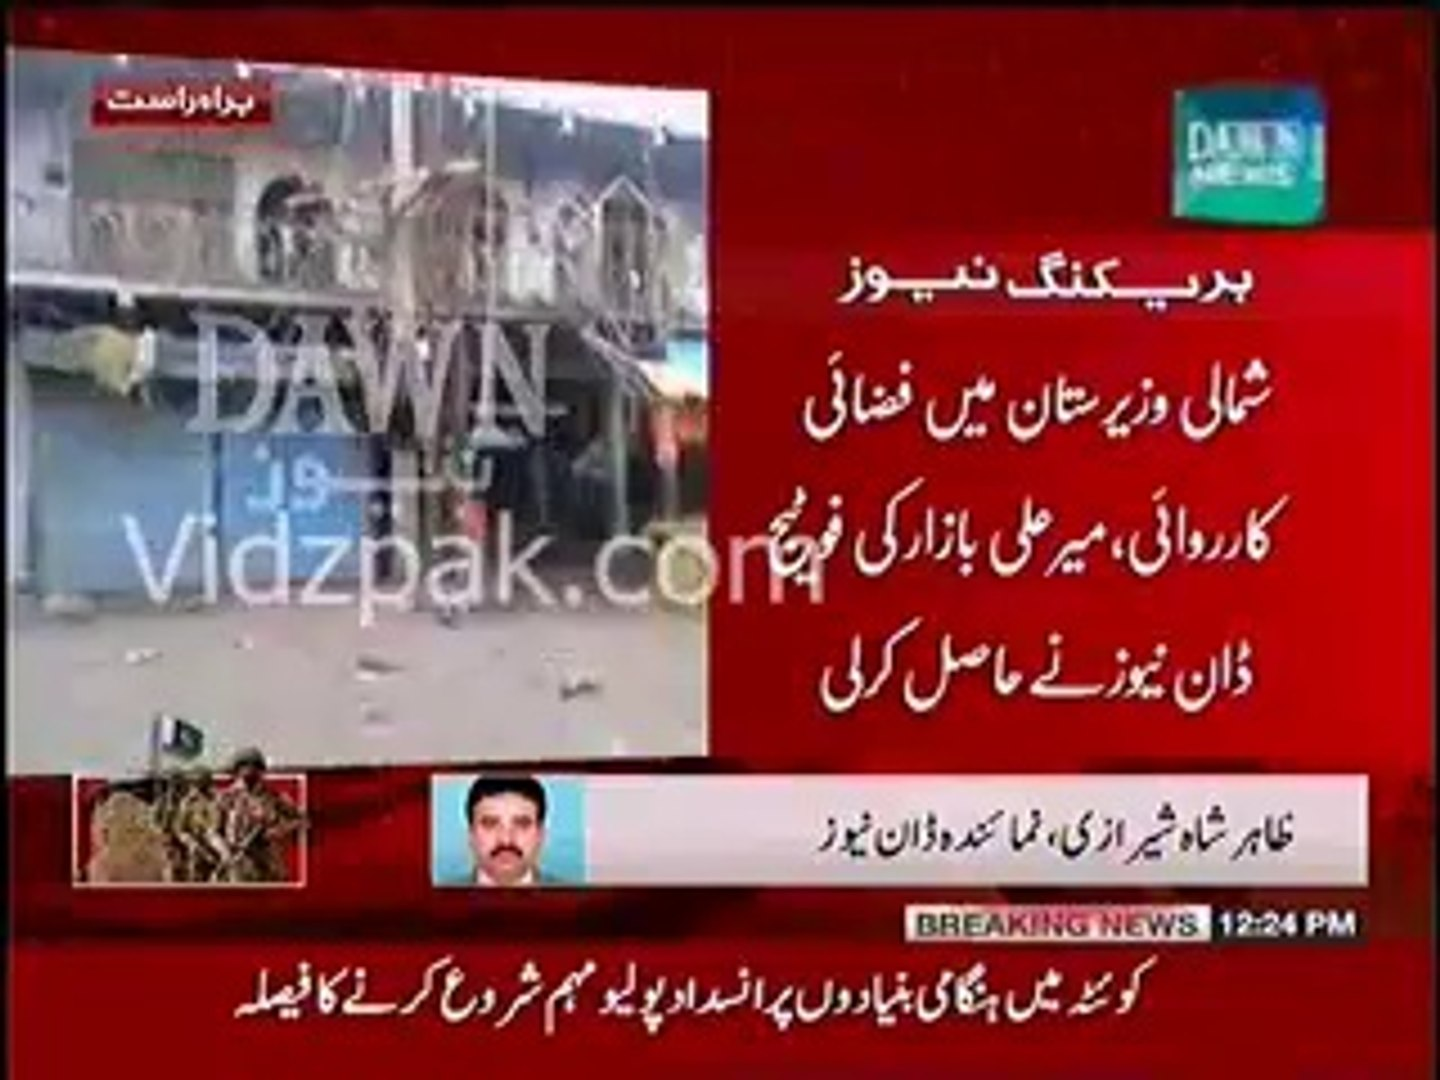 Exclusive video footage of Mir Ali Bazaar after air strikes